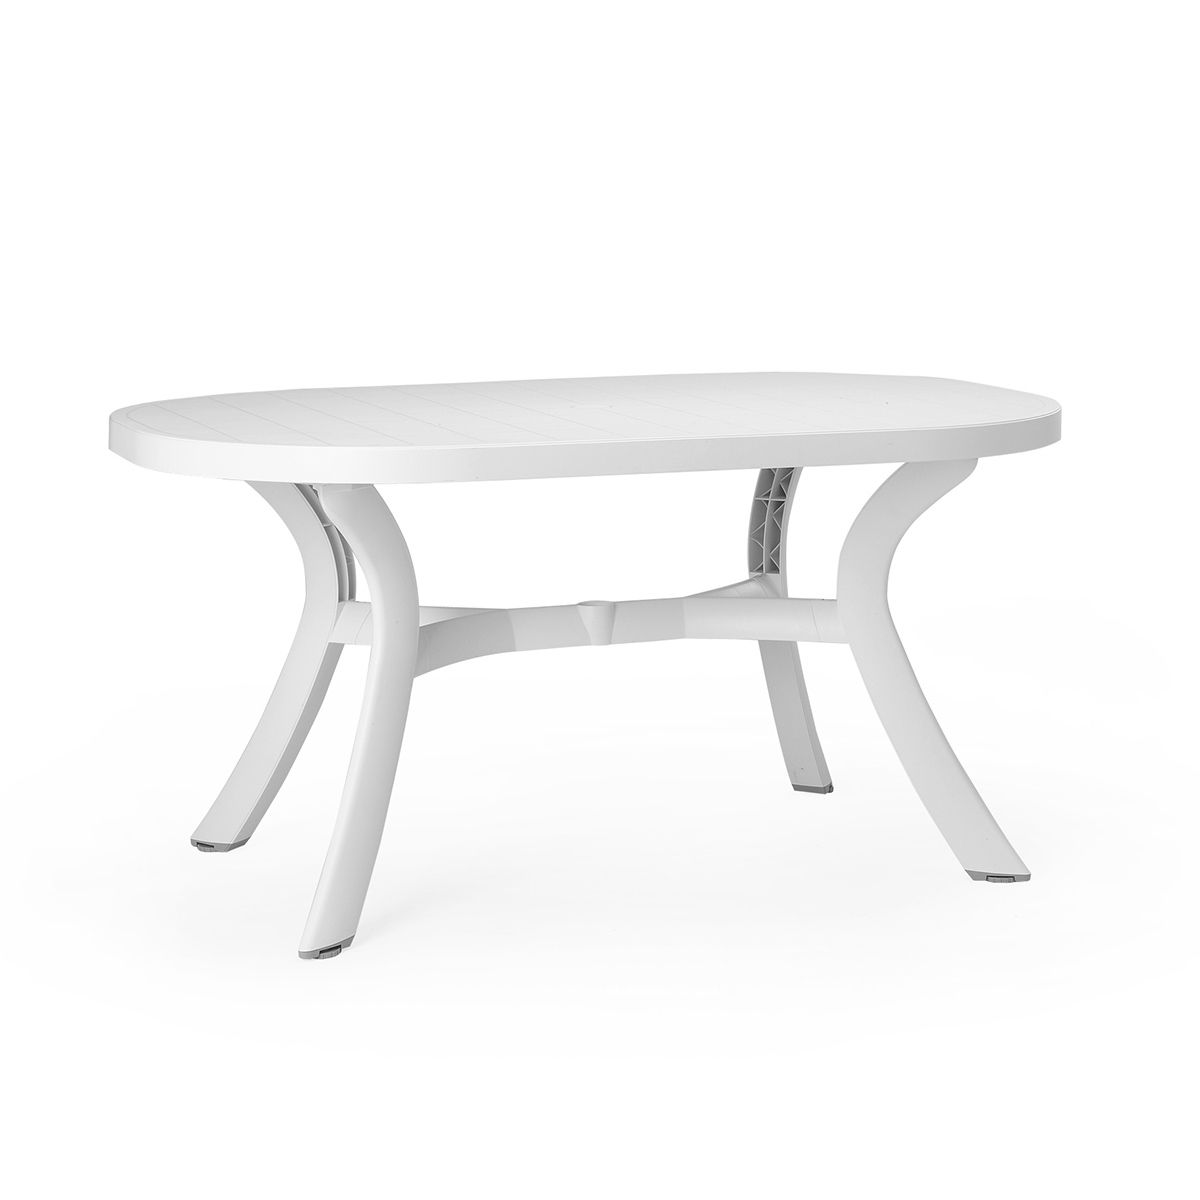 Table de jardin plastique Toscana ovale - Zendart Design